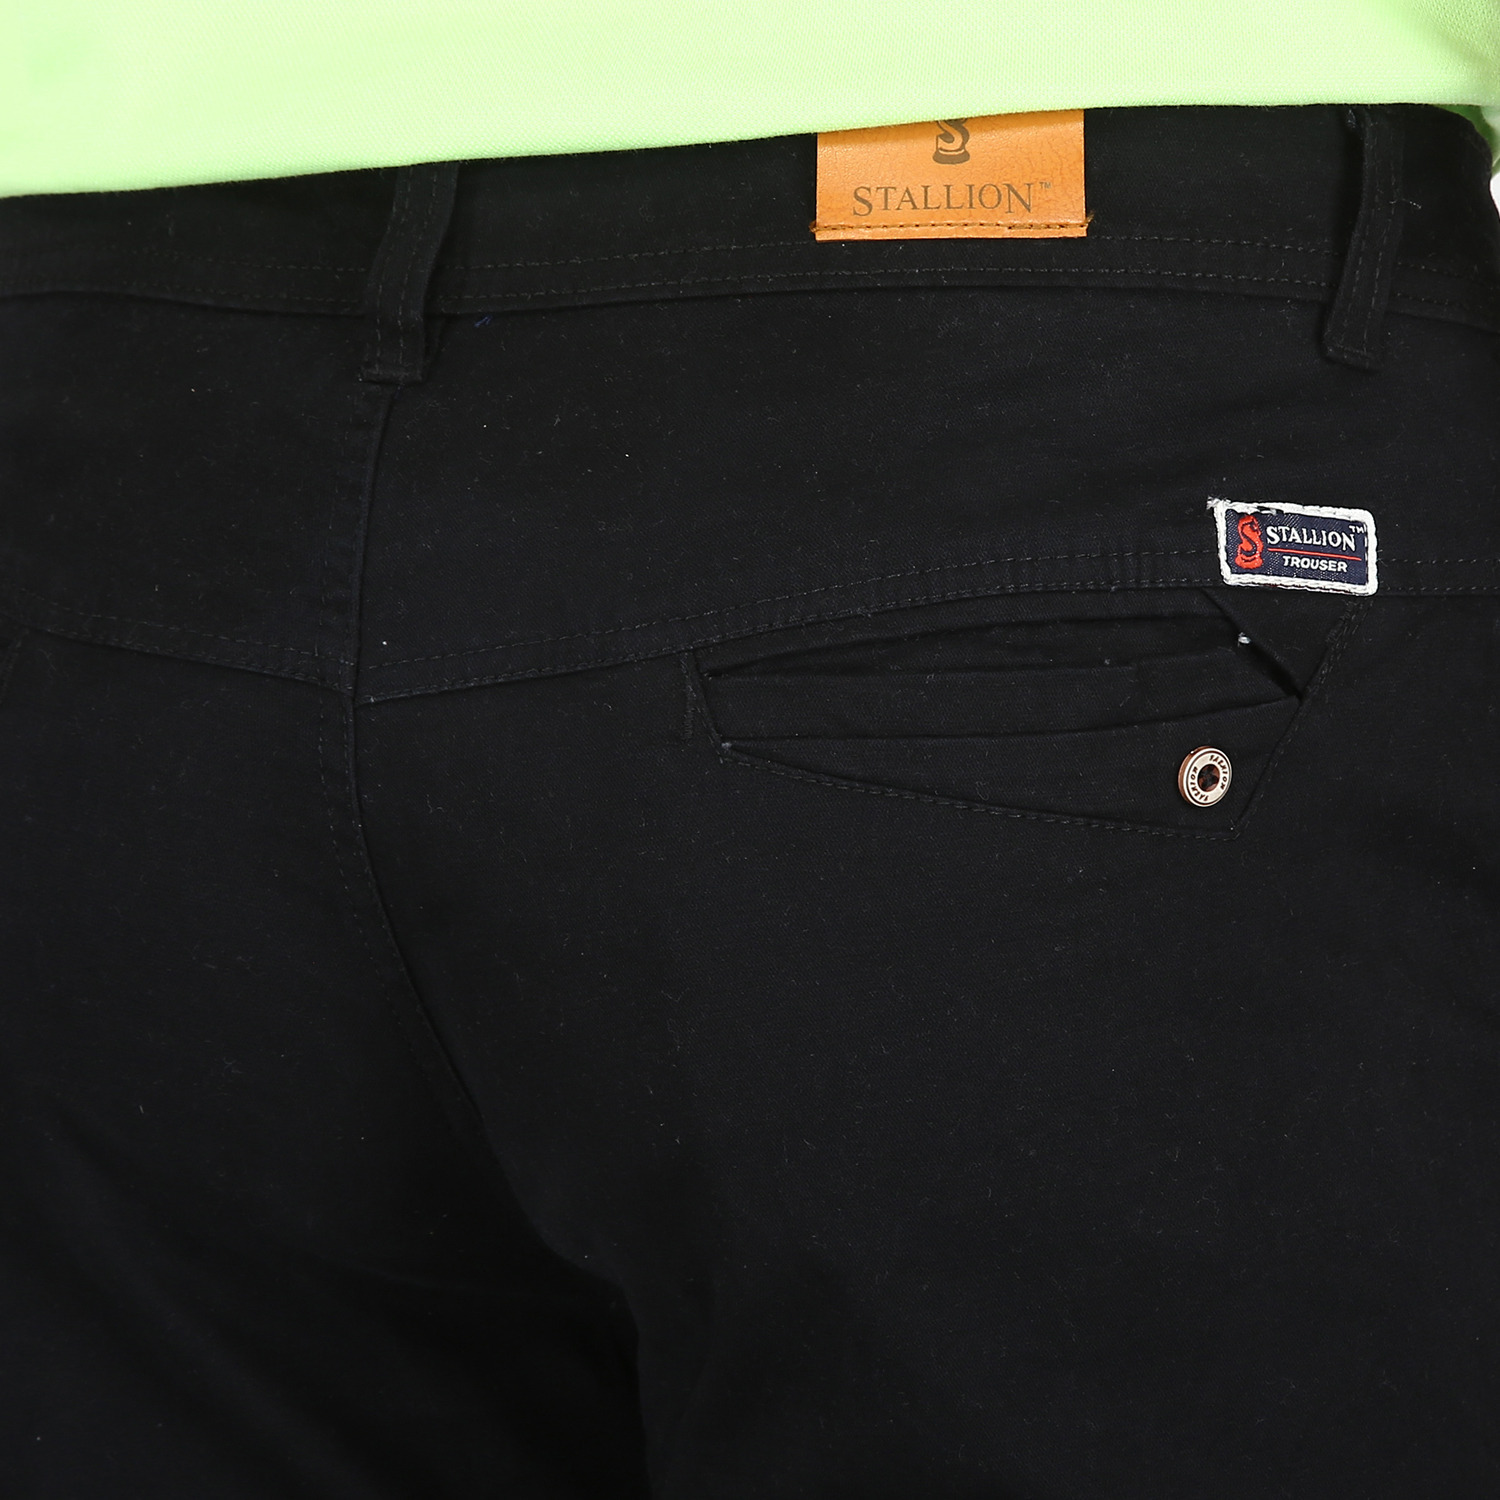 Stallion Black Casual Men's Chinos Trouser by Be You (Size:30)